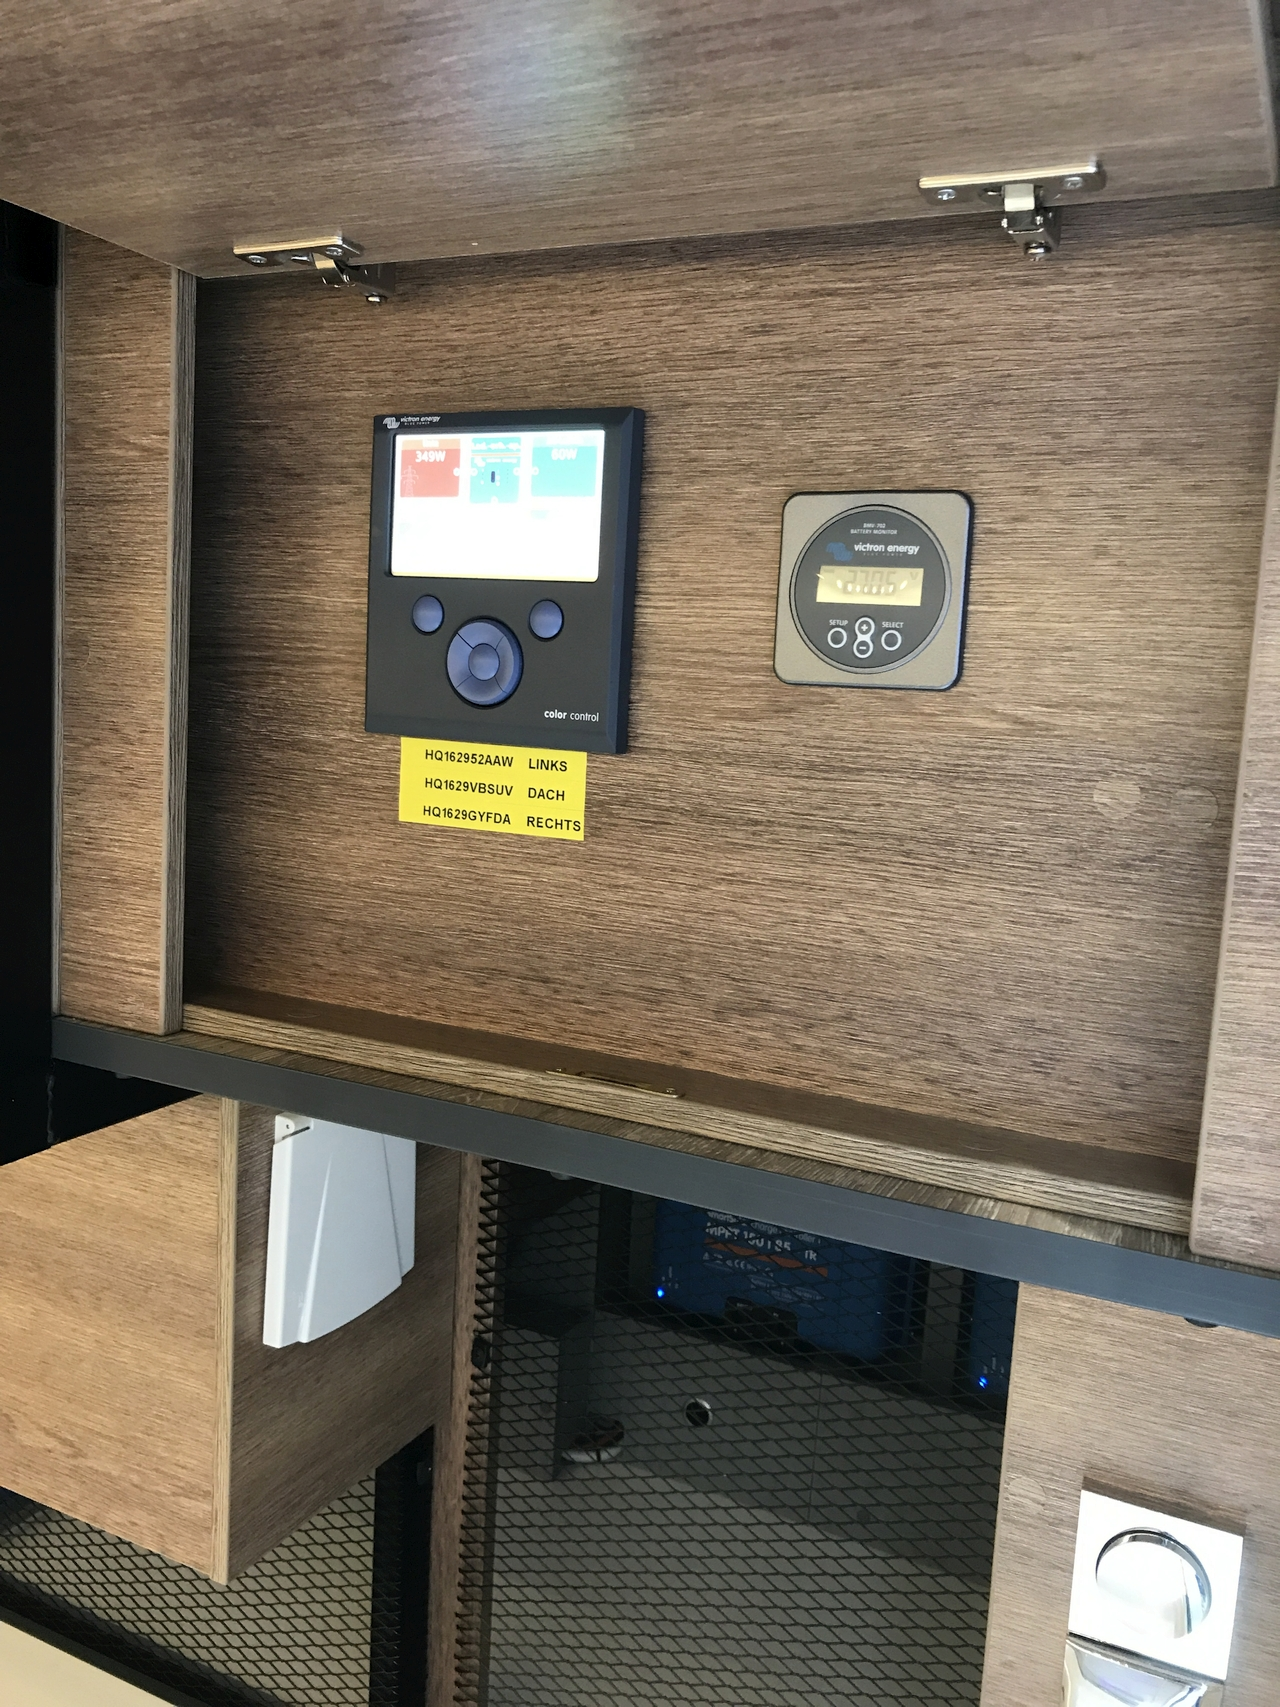 Dethleffs electric drive motorhome with Victron onboard